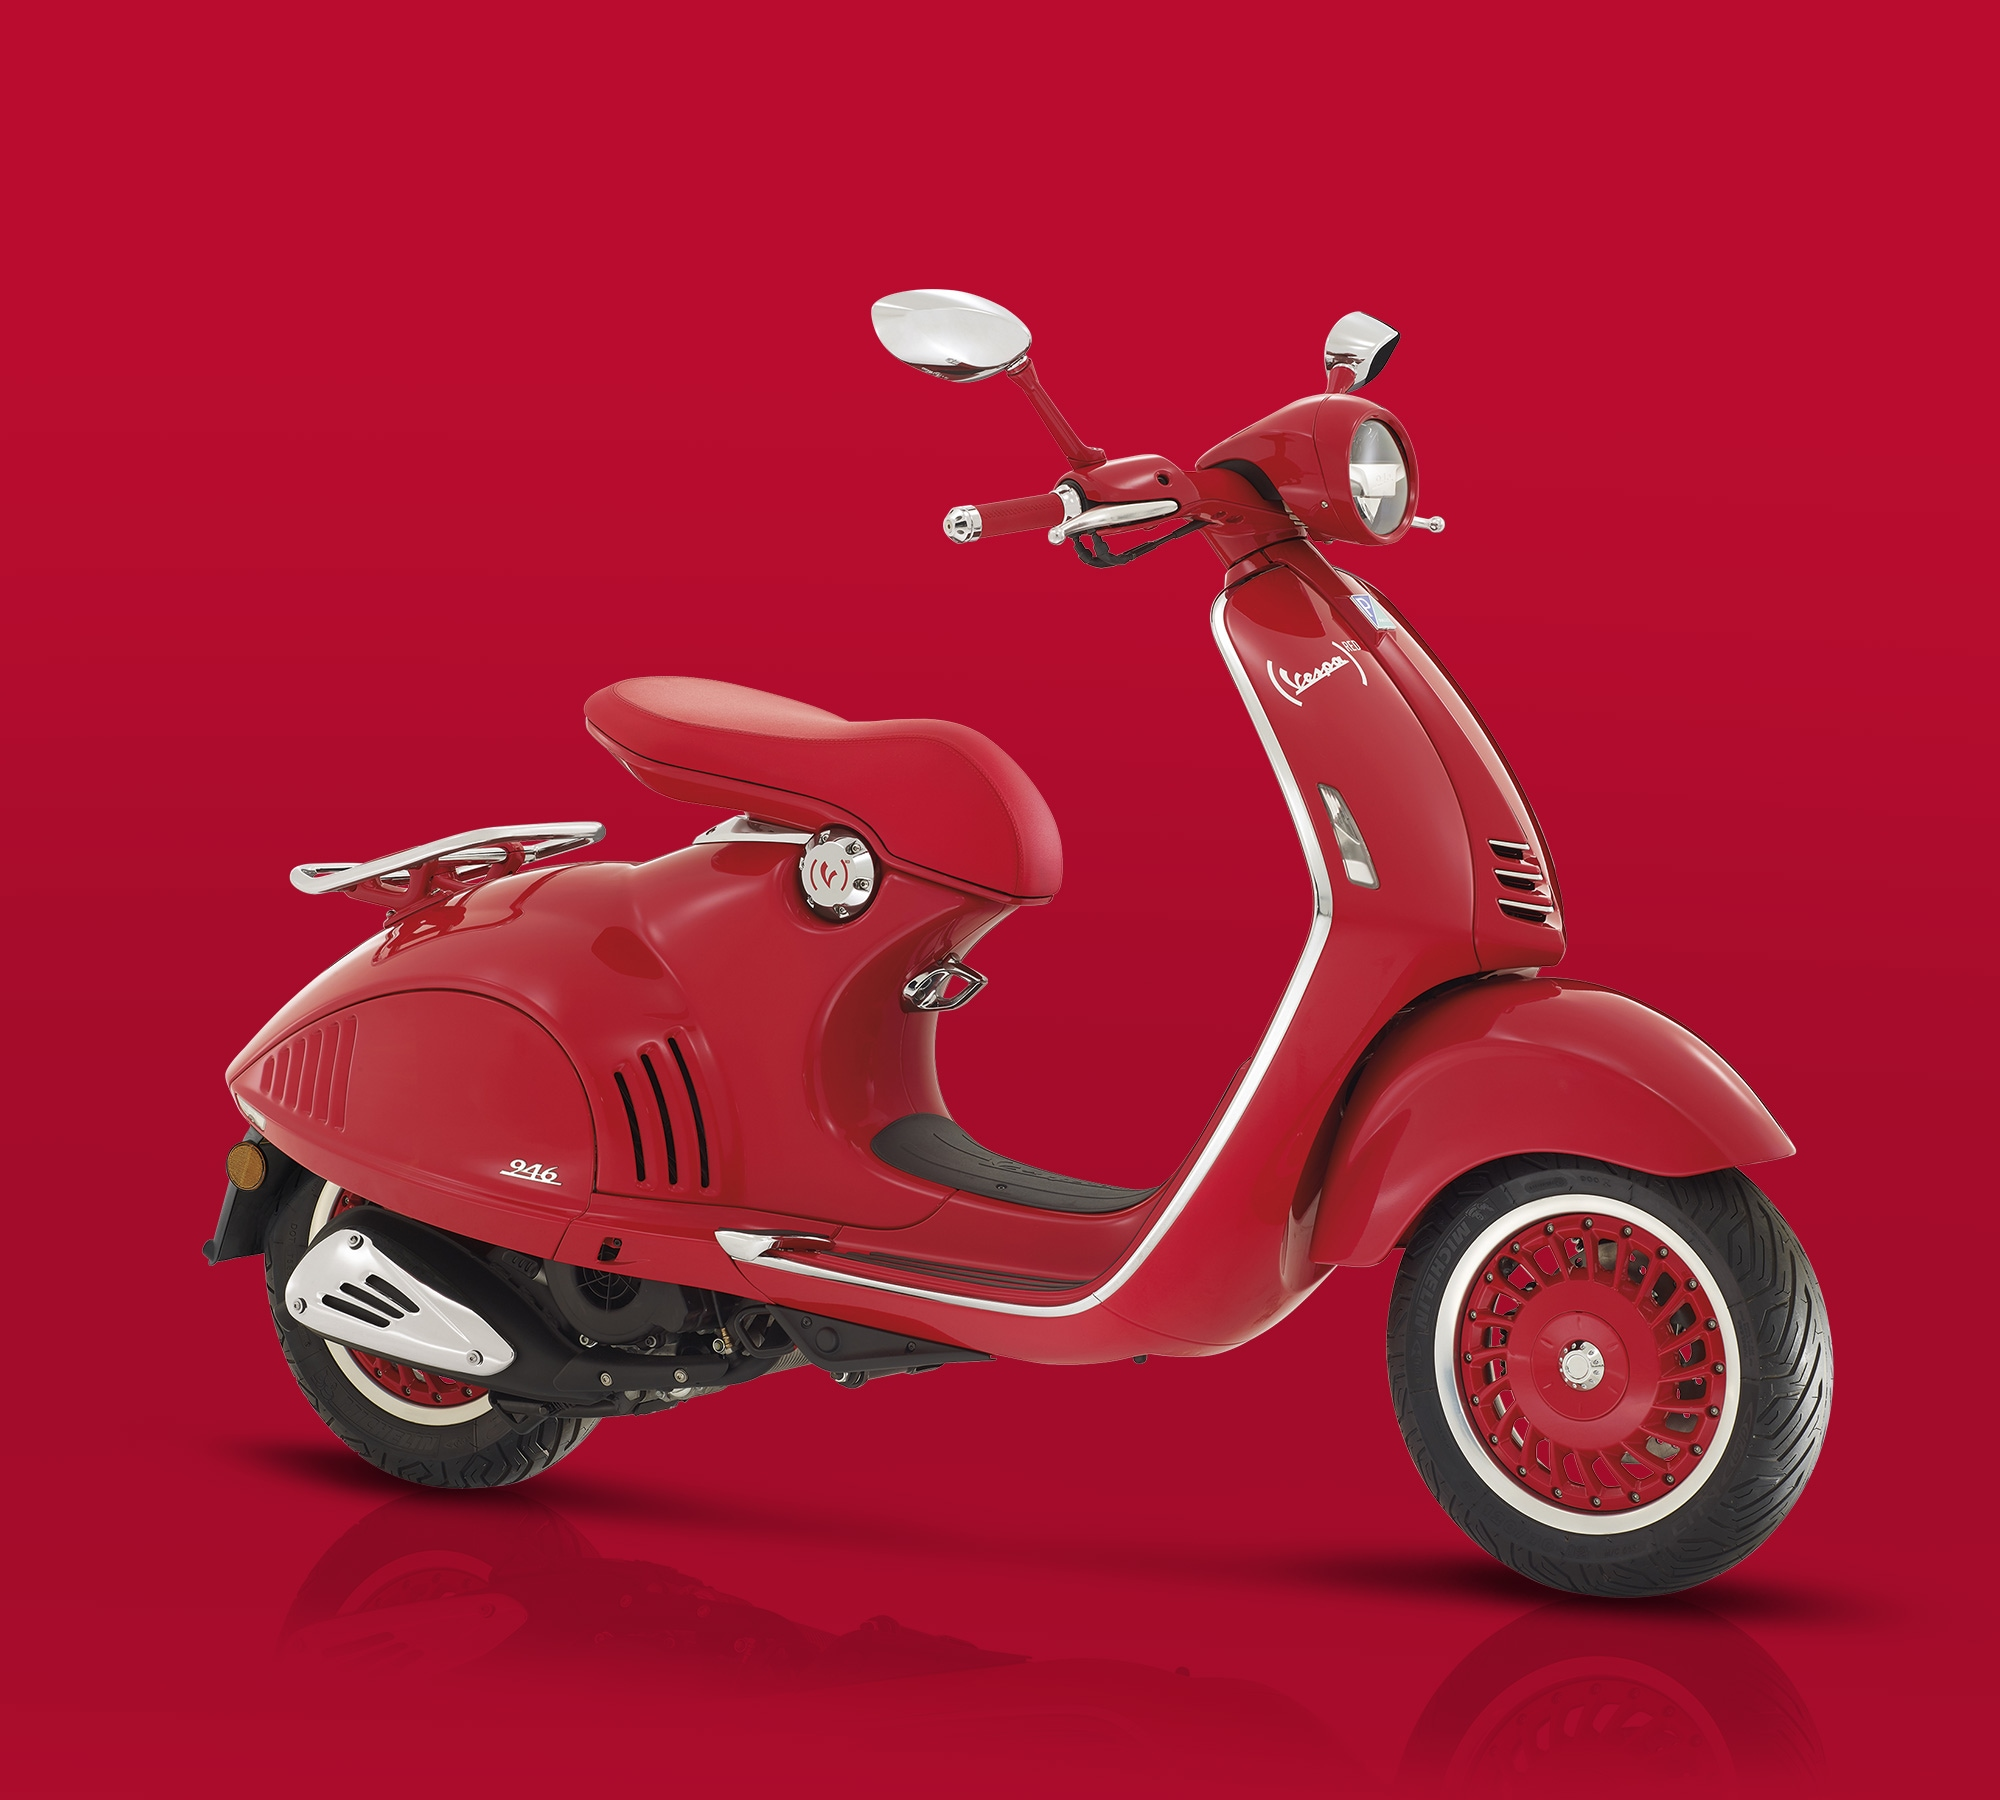 The new (VESPA 946)RED is the latest example of magic and creativity, a new  recipe for beauty and anti-conformity, an eternal contemporaneity.